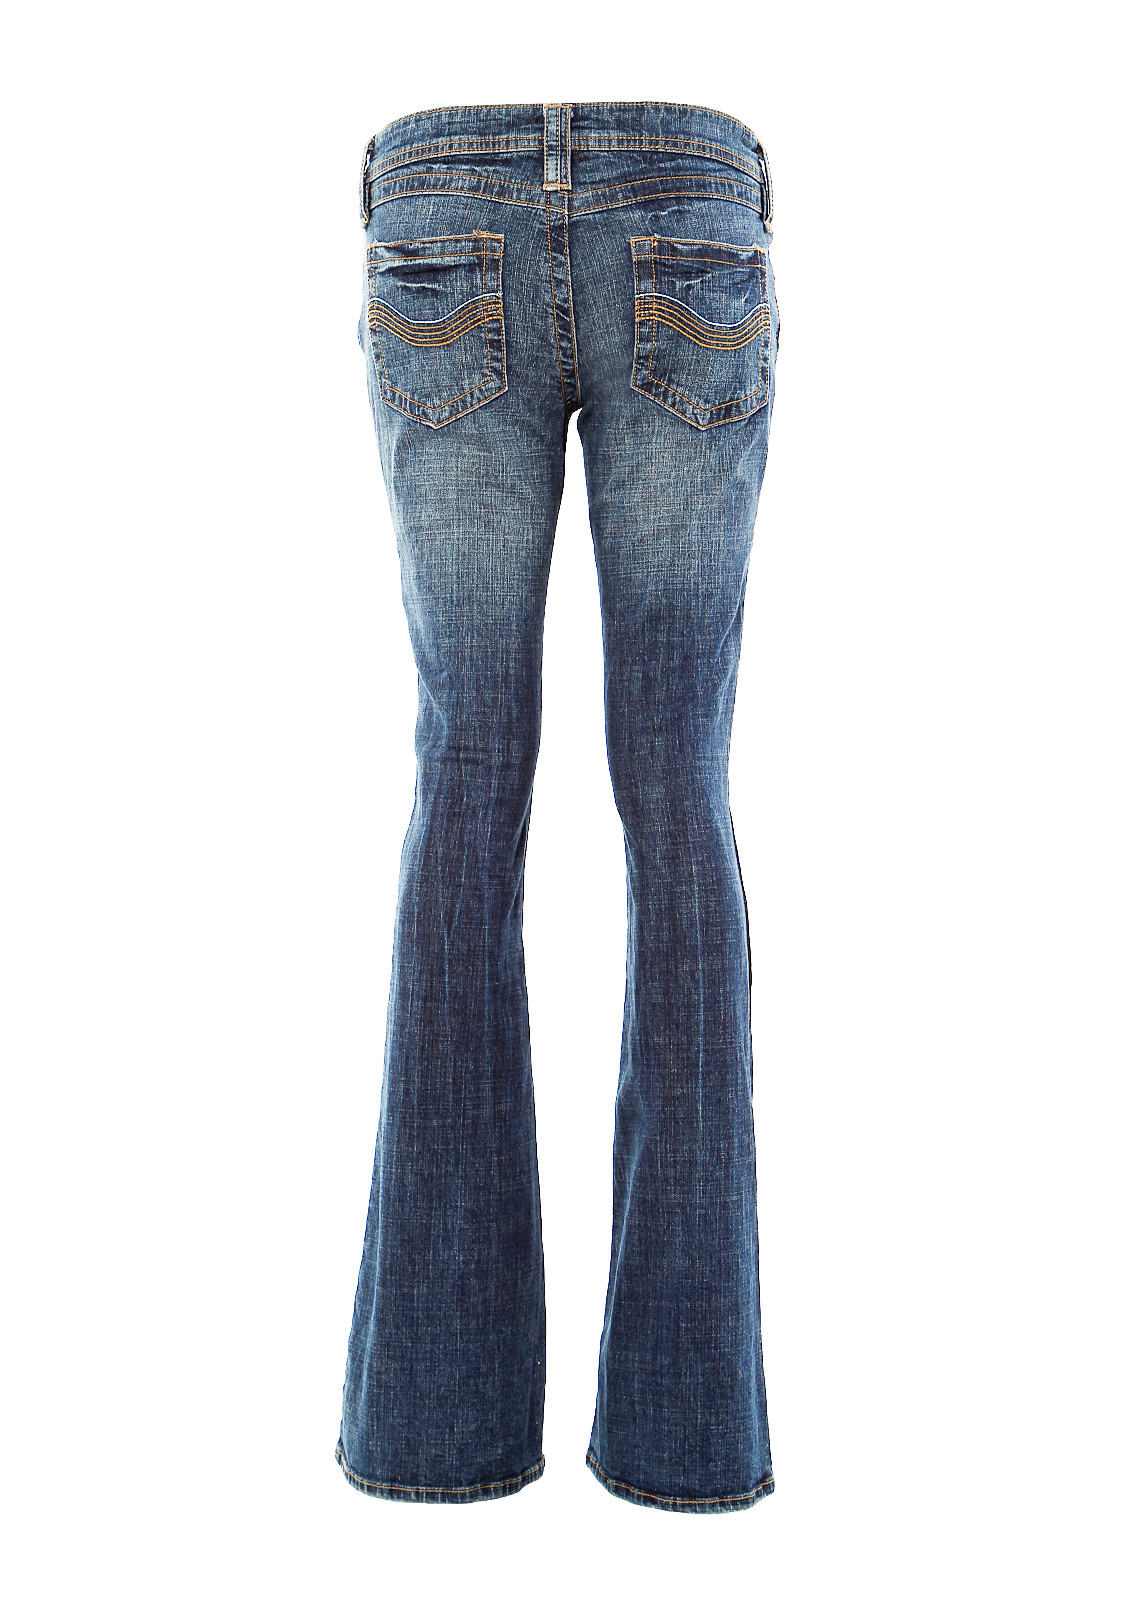 Find great deals on eBay for womens bootcut pants. Shop with confidence.